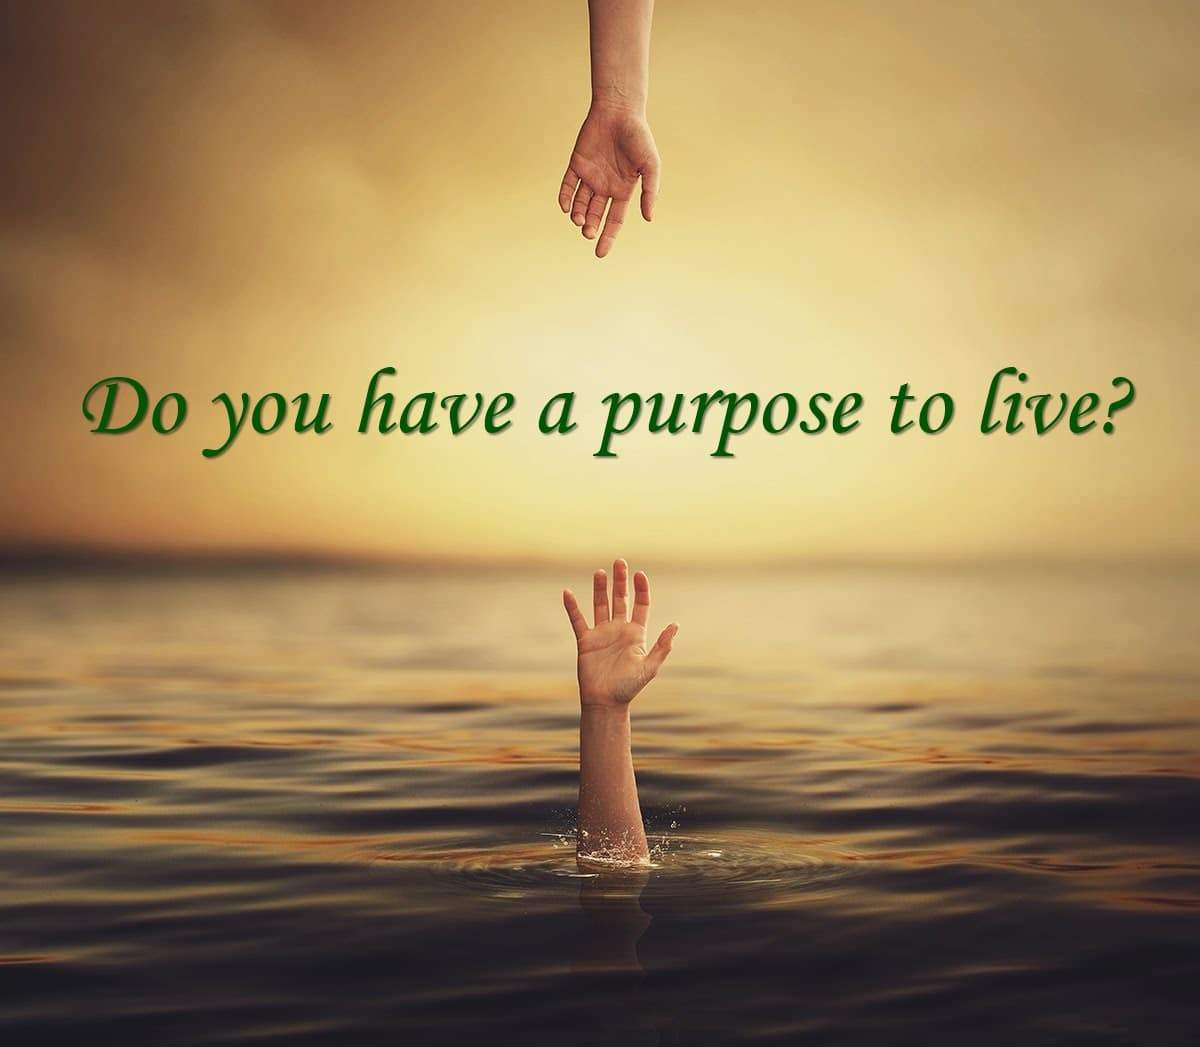 Do you have a purpose to live